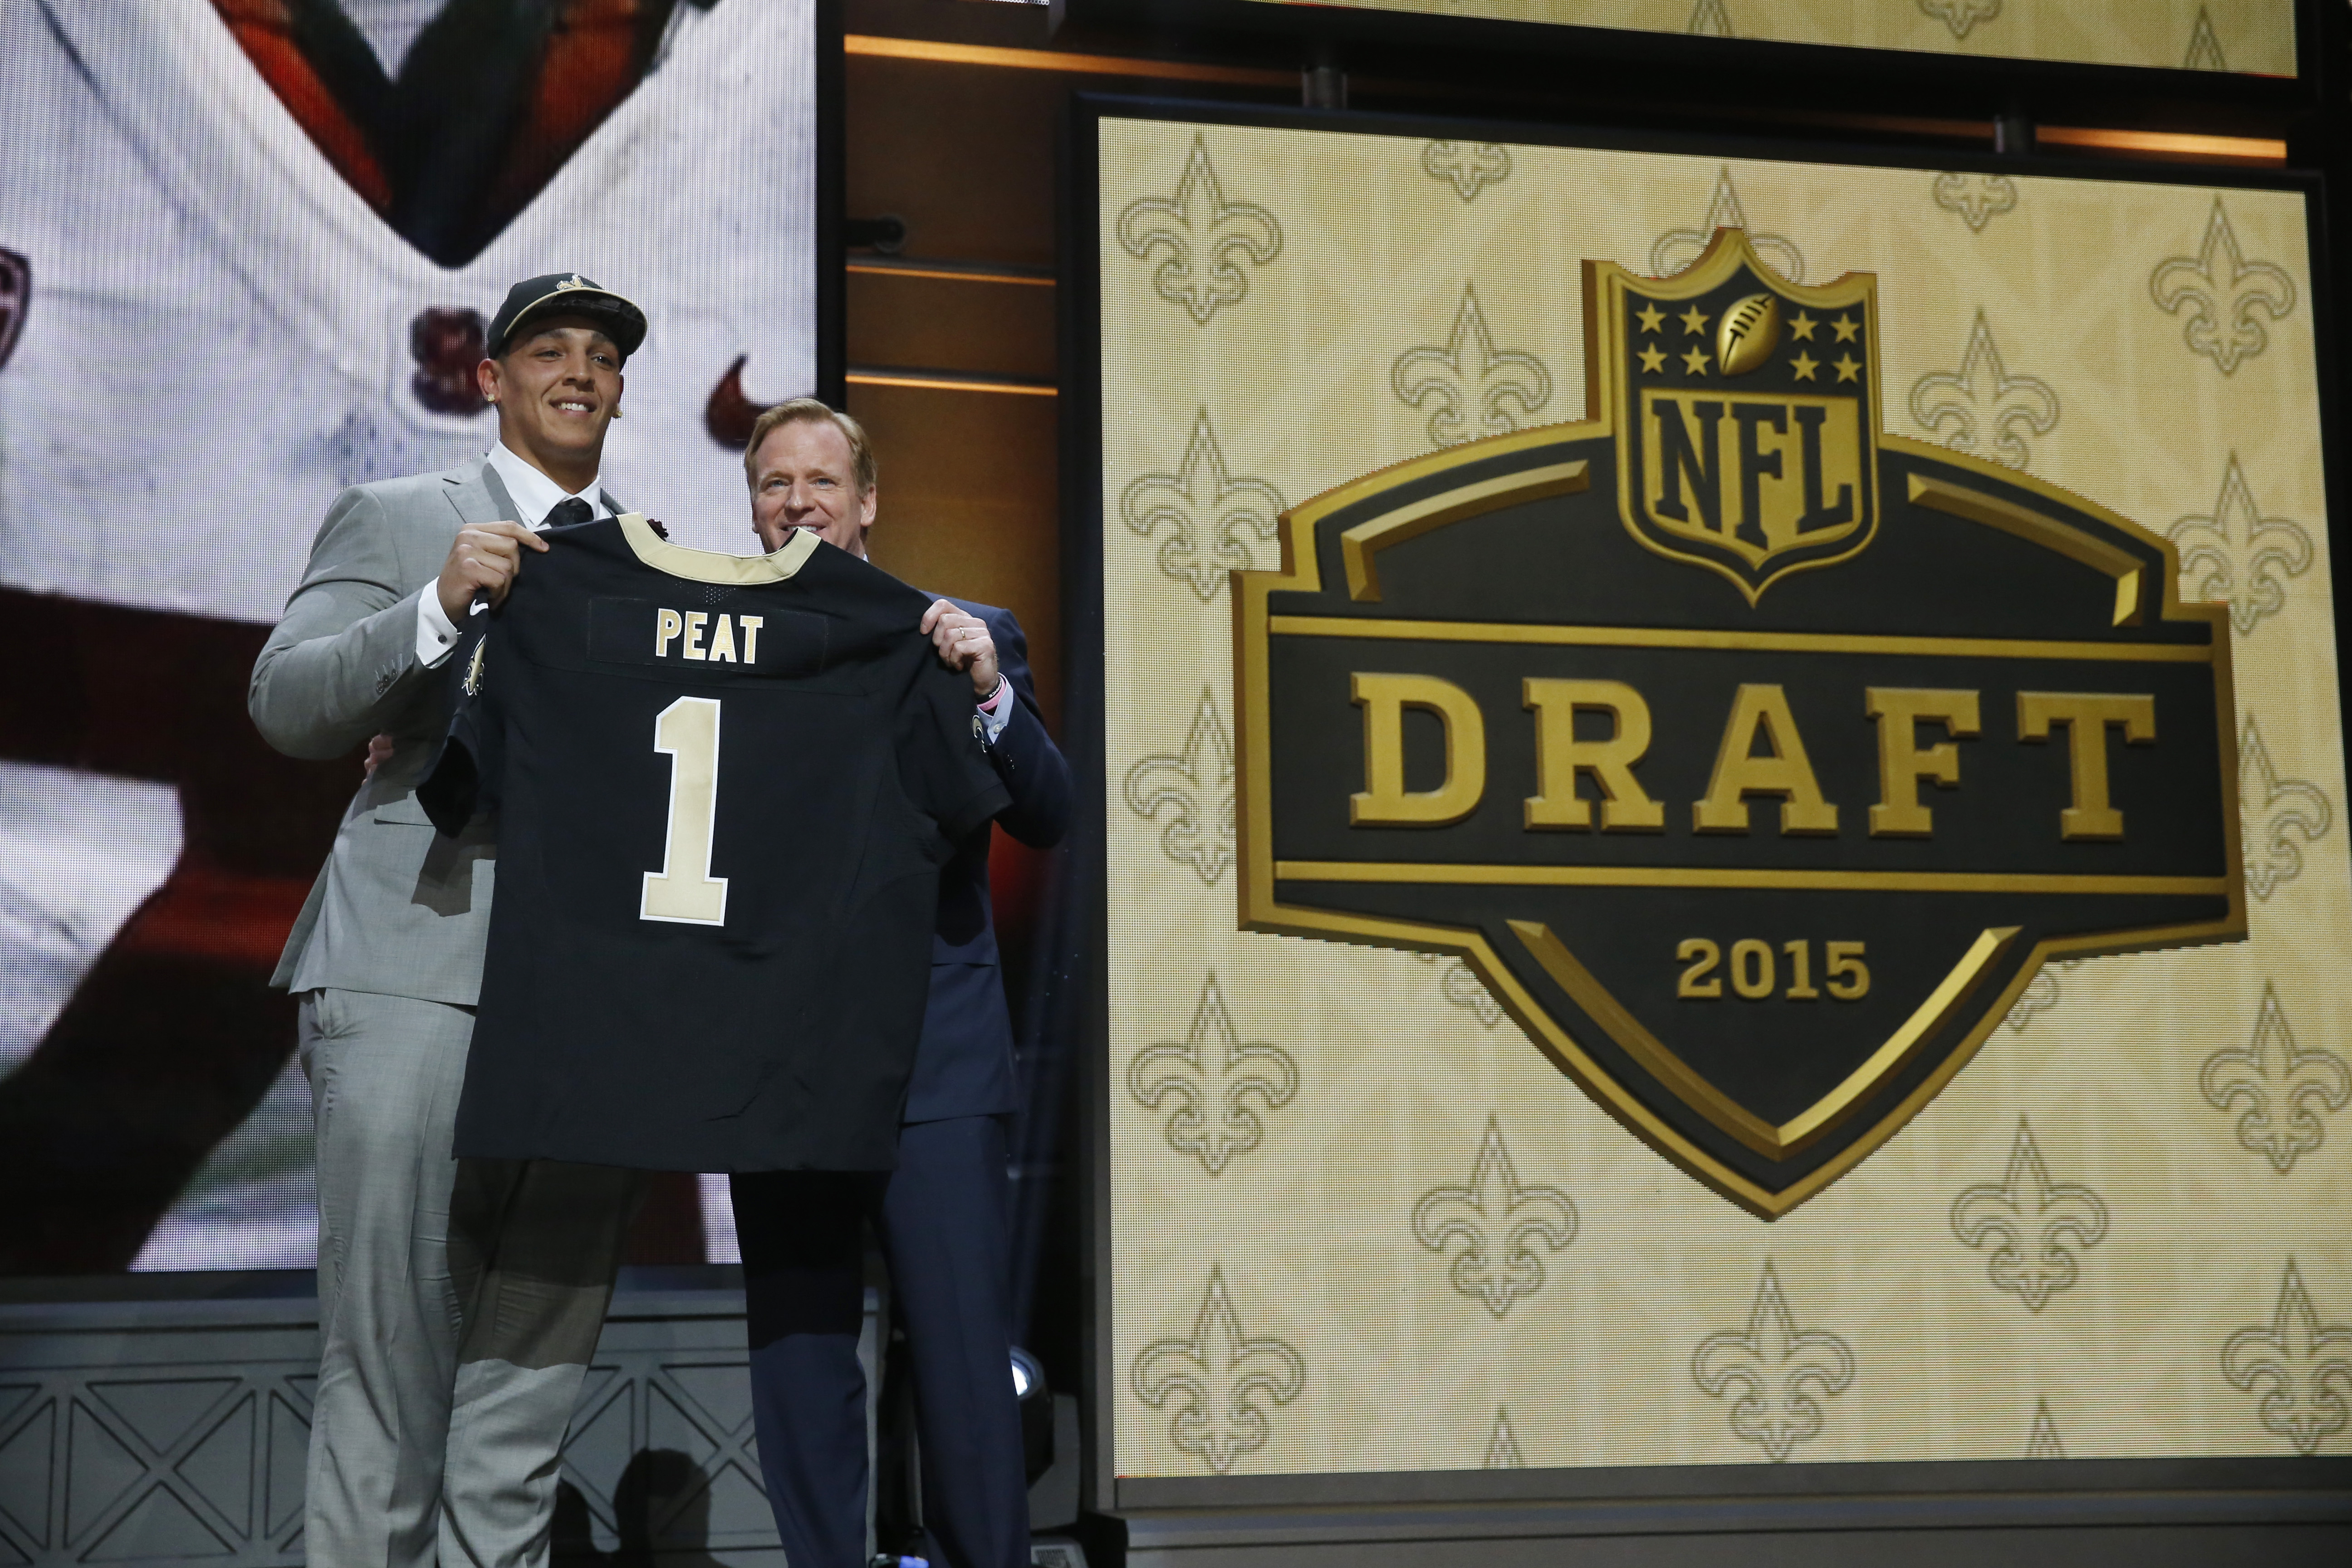 Stanford offensive lineman Andrus Peat poses for photos with NFL commissioner Roger Goodell after being selected by the New Orleans Saints as the 13th pick in the first round of the 2015 NFL Draft,  Thursday, April 30, 2015, in Chicago. (AP Photo/Charles